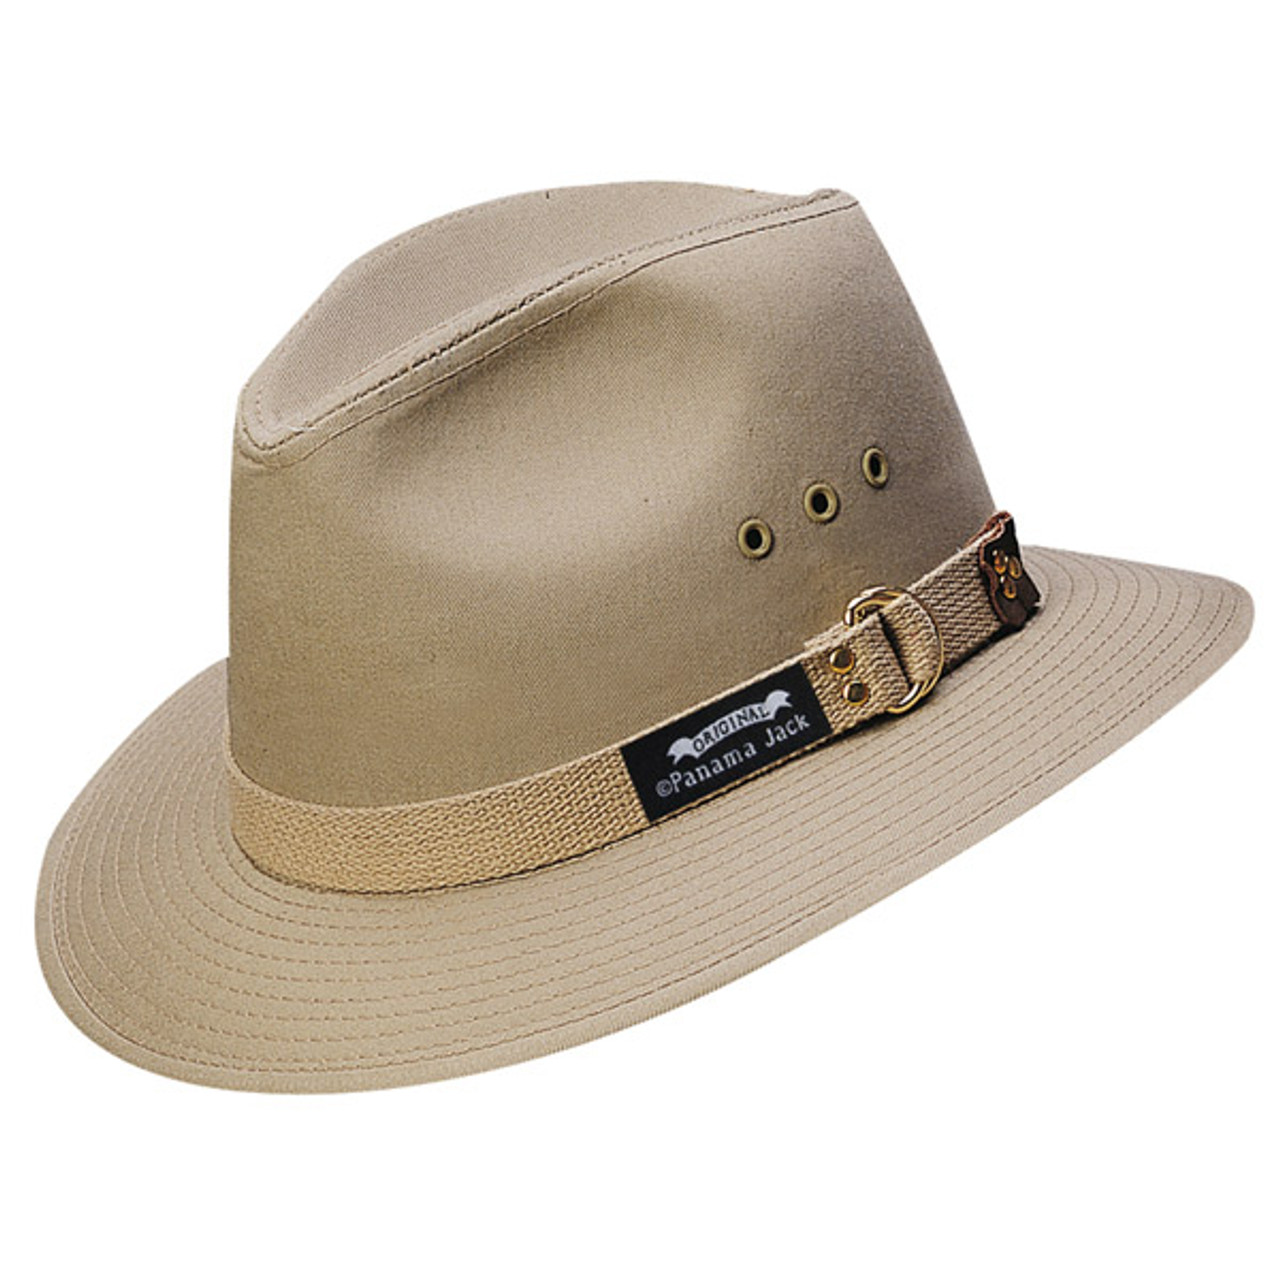 82320860f2440d Panama Jack | Canvas Safari Hat | Hats Unlimited